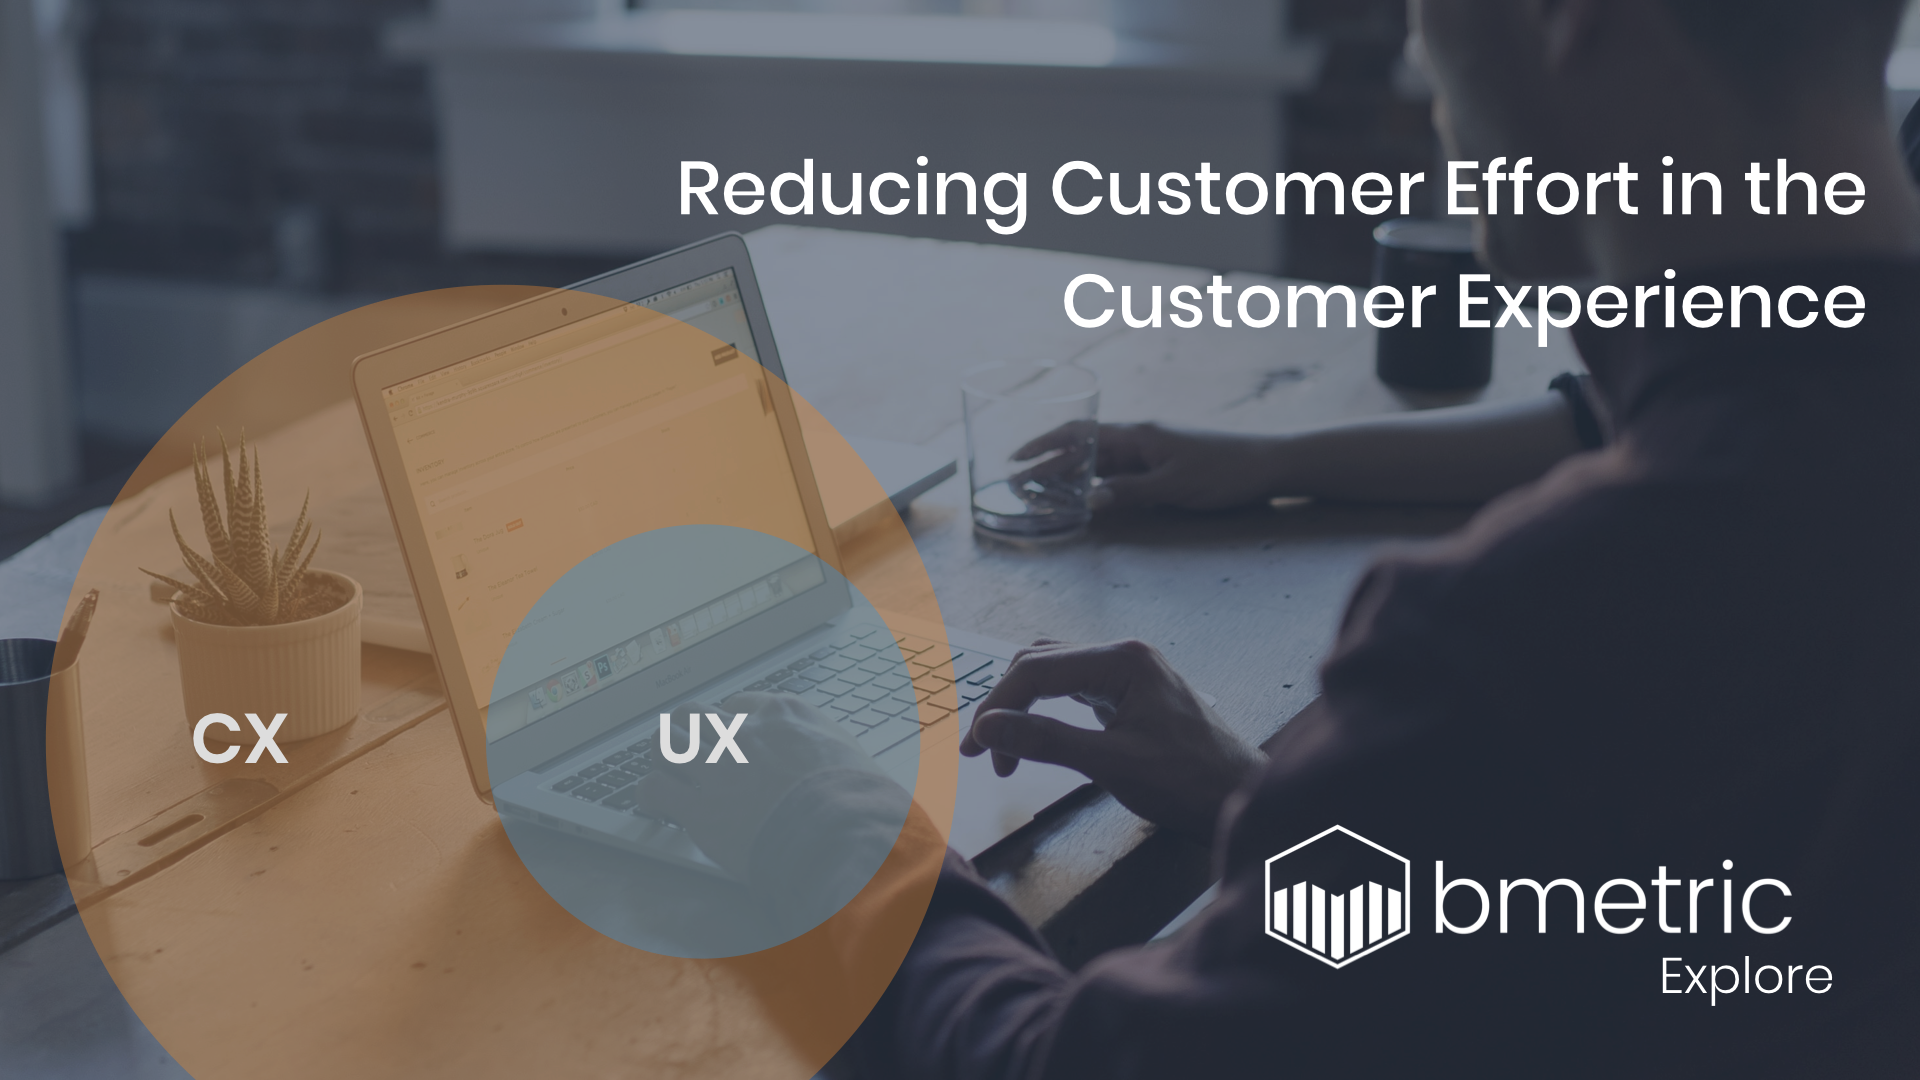 Reducing effort in the customer experience: UX is fundamental